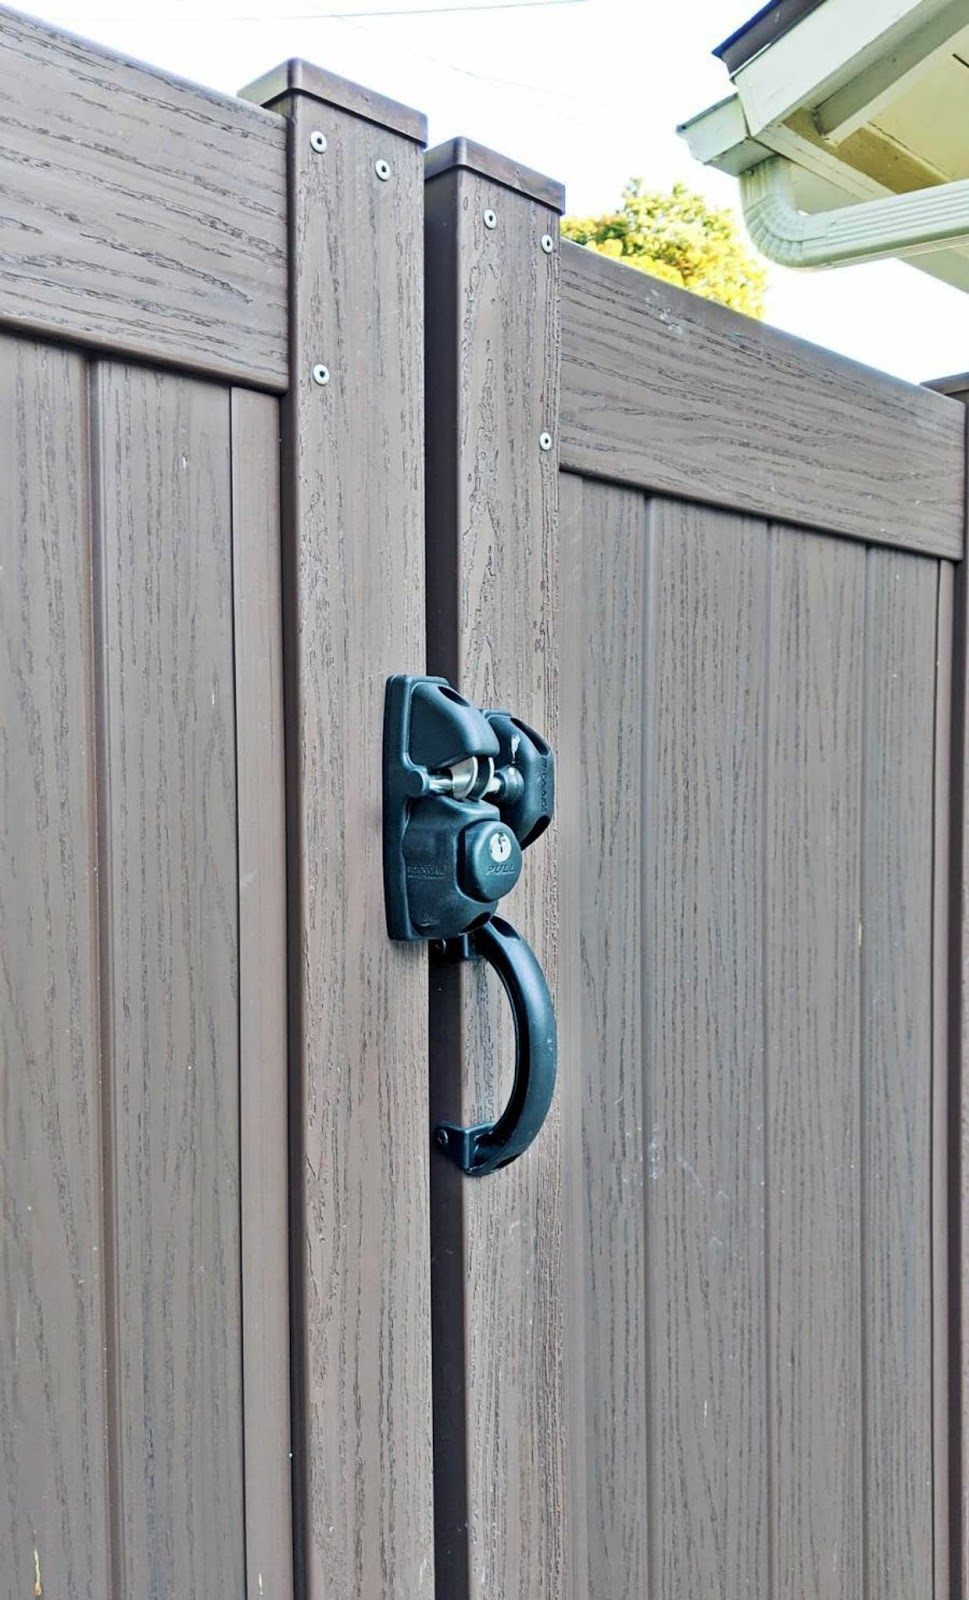 bufftech vinyl privacy fence gate security lock driveway curb appeal exterior home improvement modern craftsman ranch house architecture